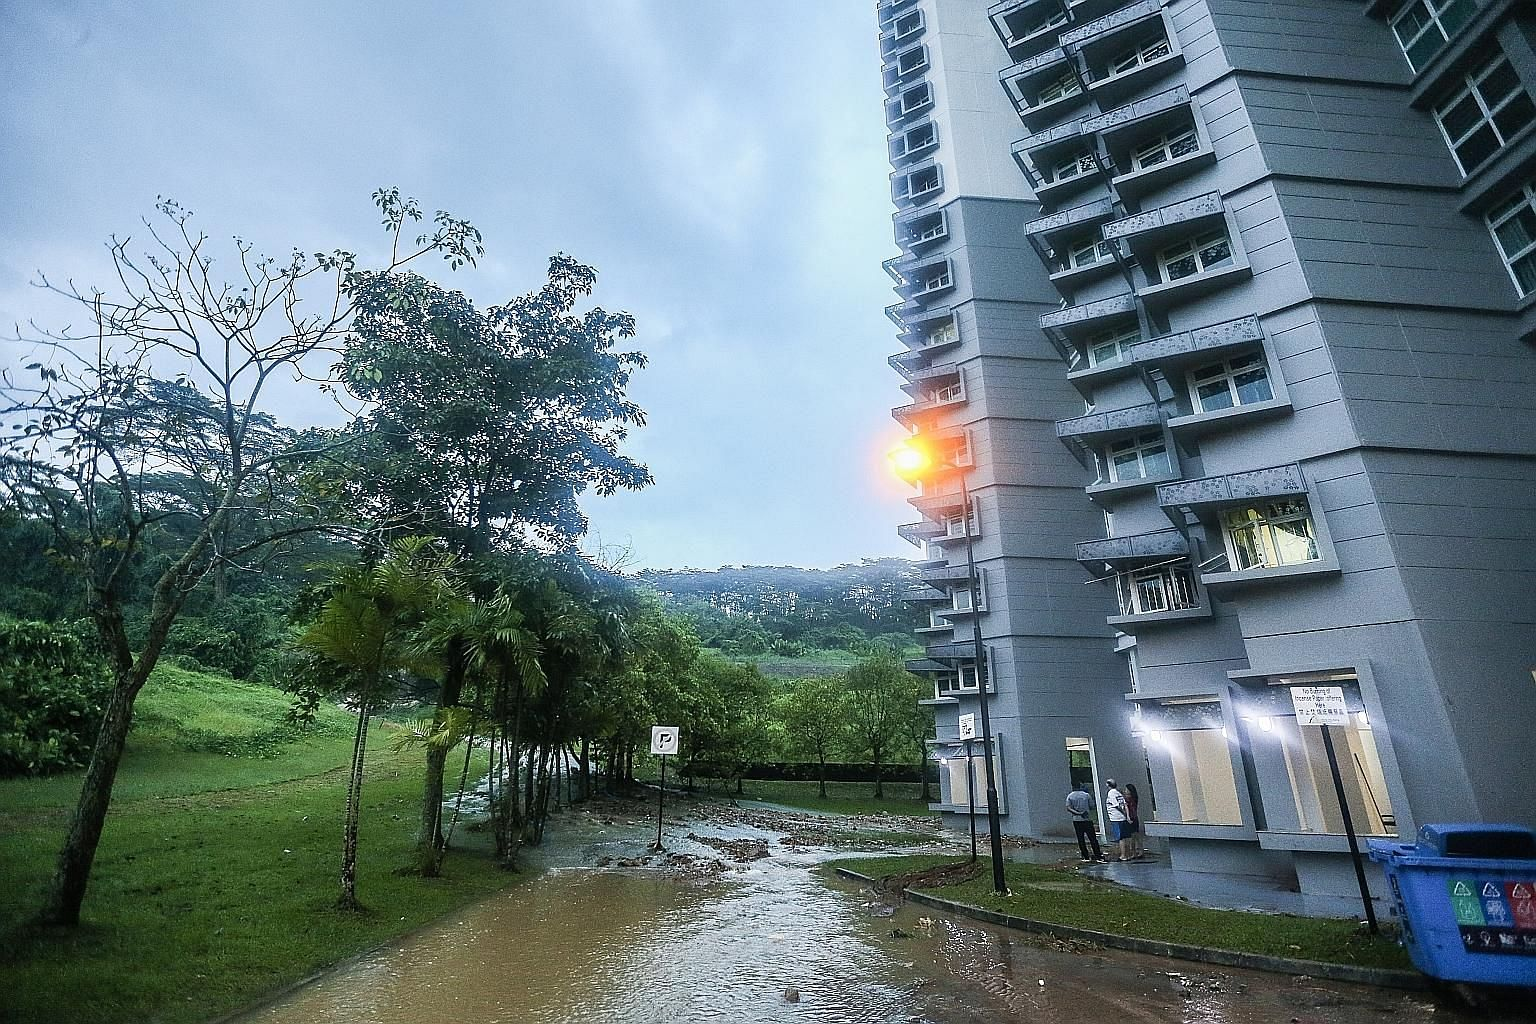 """Several parts of western Singapore experienced flash floods after intense rain yesterday evening, said national water agency PUB. In a Facebook post at about 8.30pm last night, it said: """"Flash floods were reported along Choa Chu Kang Way to Choa Chu"""